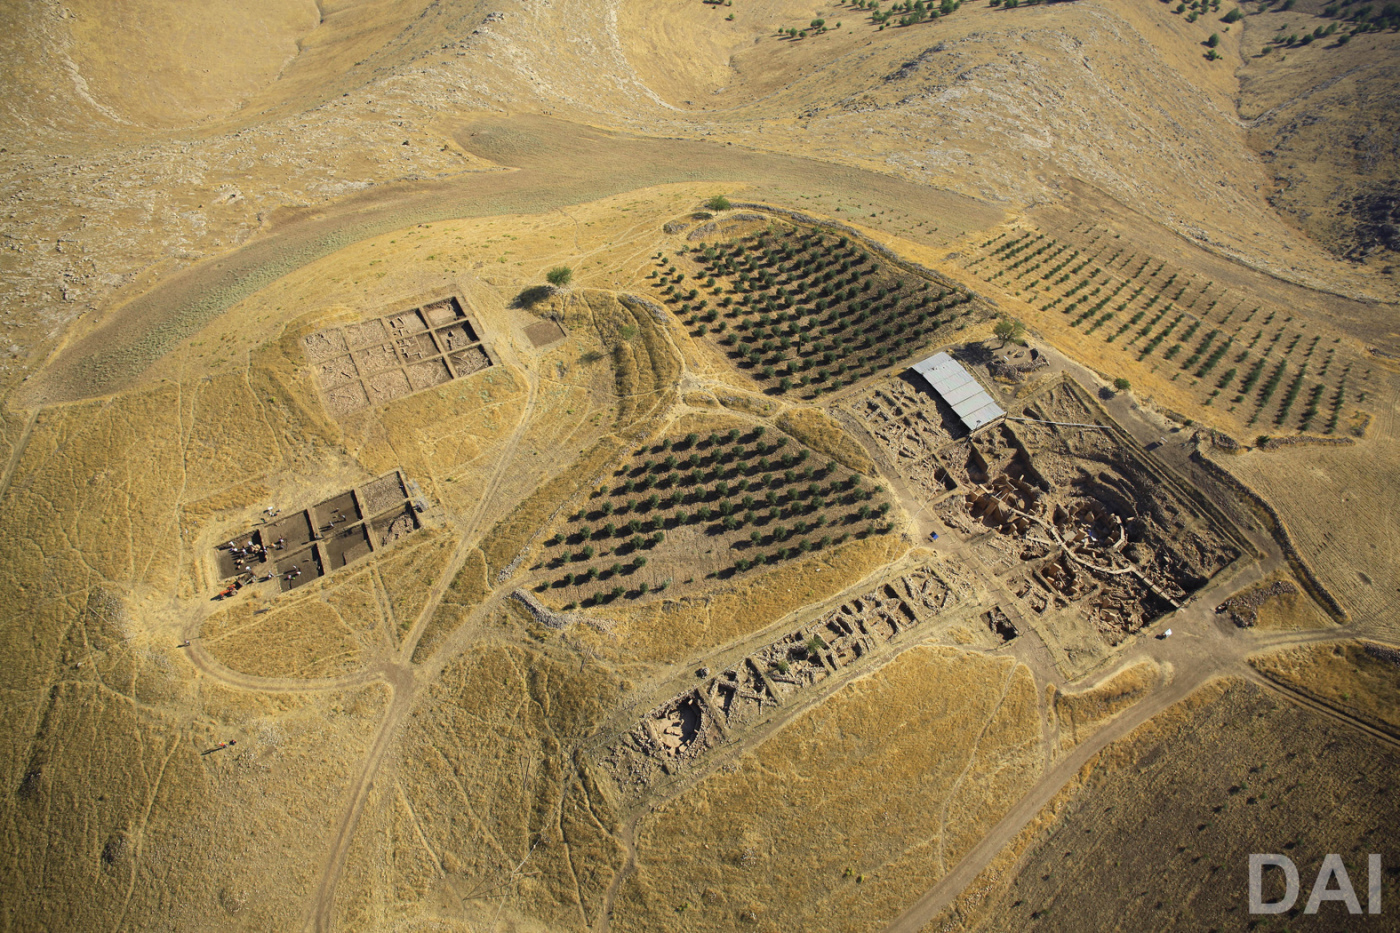 Aerial view of the Göbekli Tepe excavations | Photo: German Archaeological Institute, Erhan Kücük